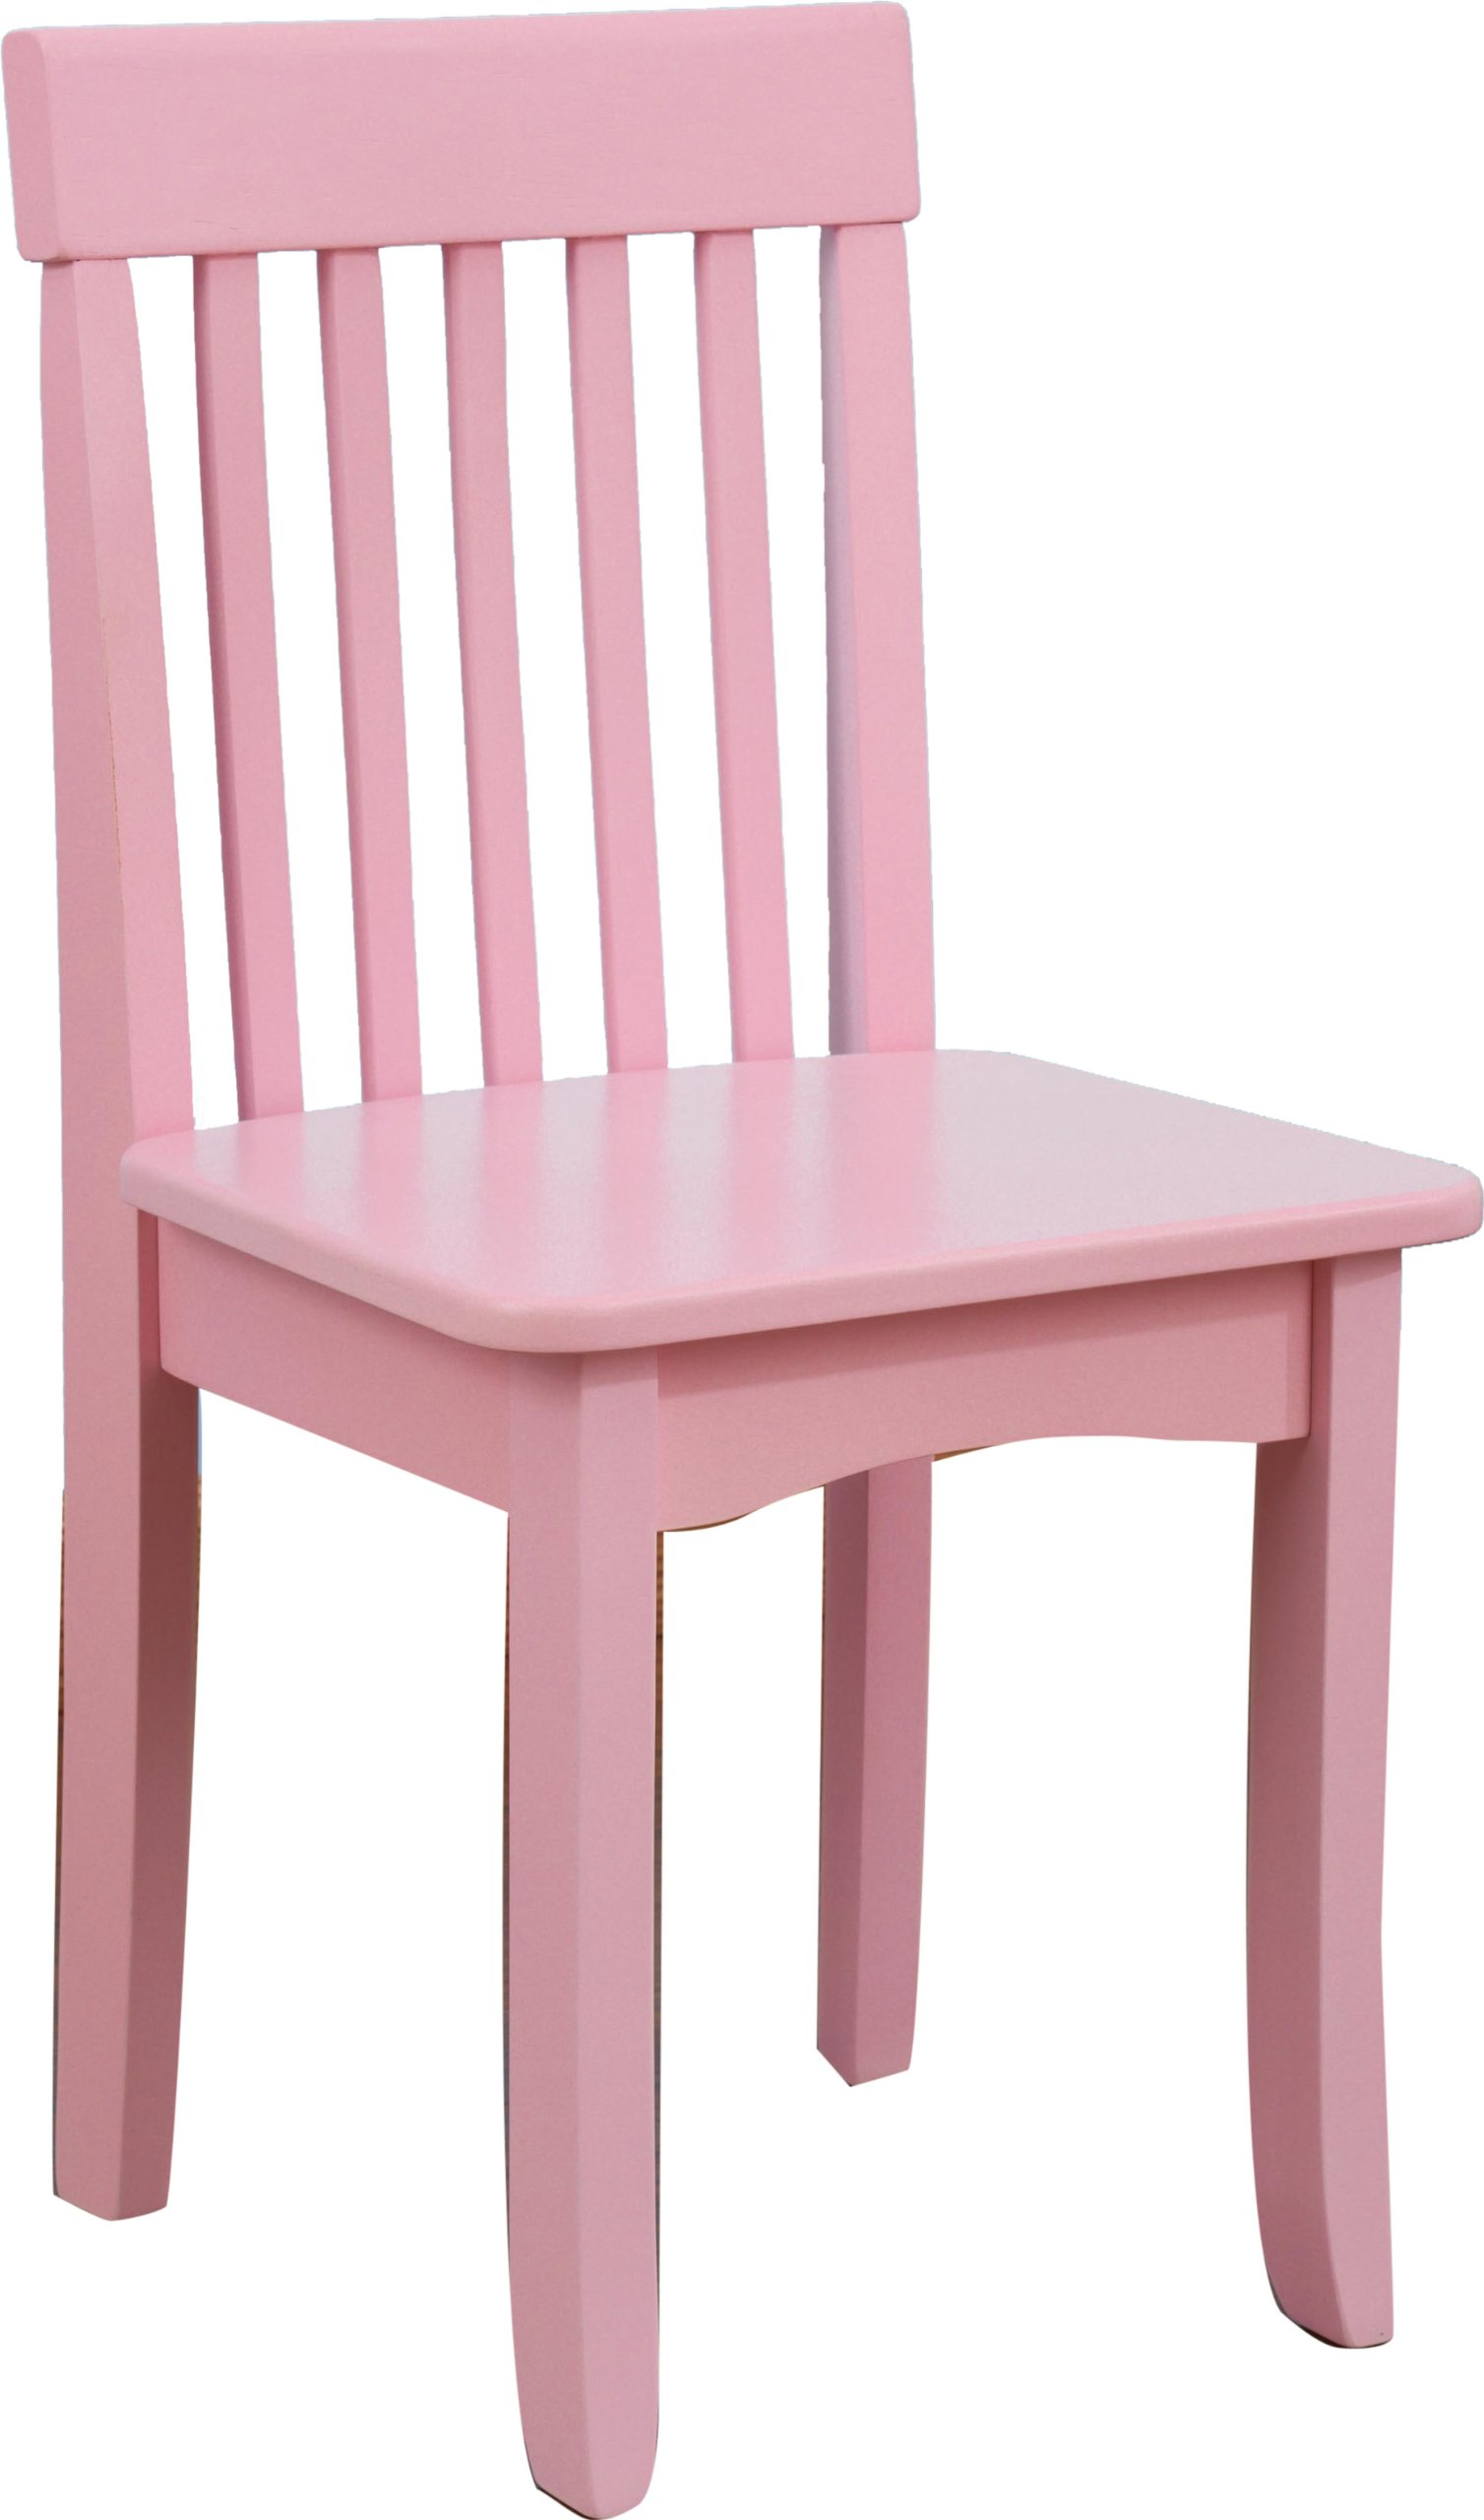 KidKraft Avalon Chair - Pink